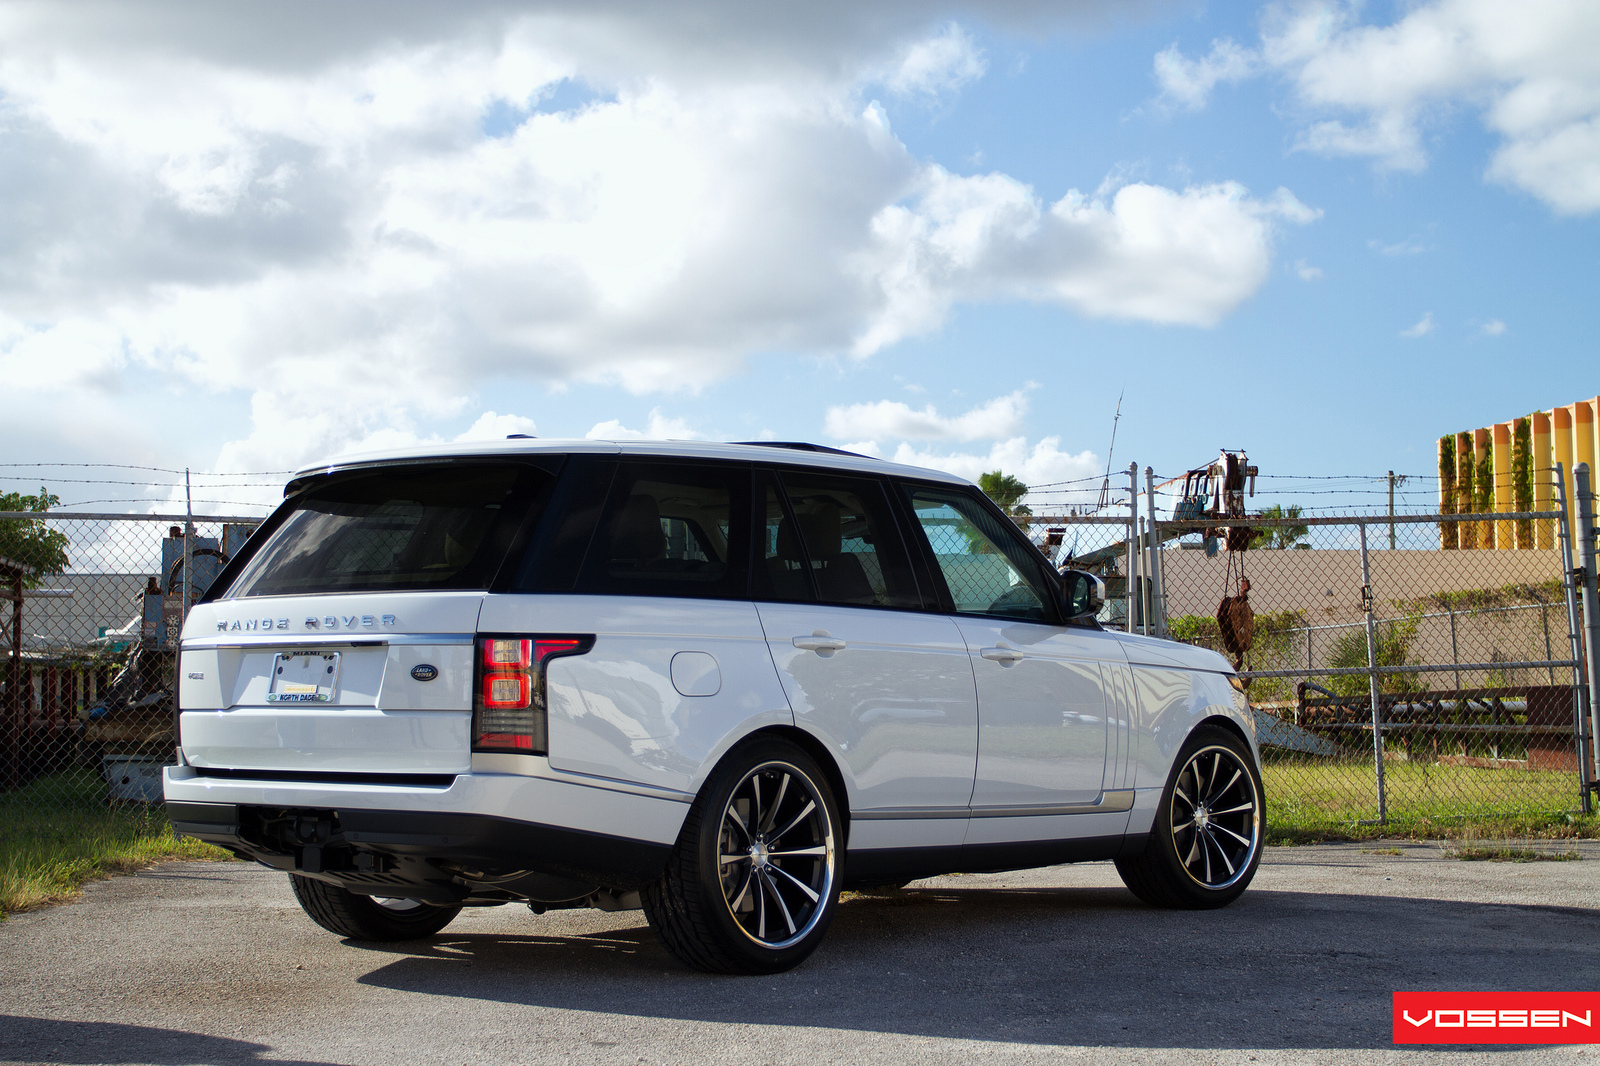 Range Rover Sport 22 Inch Wheels Image Details 2013 Fuse Box